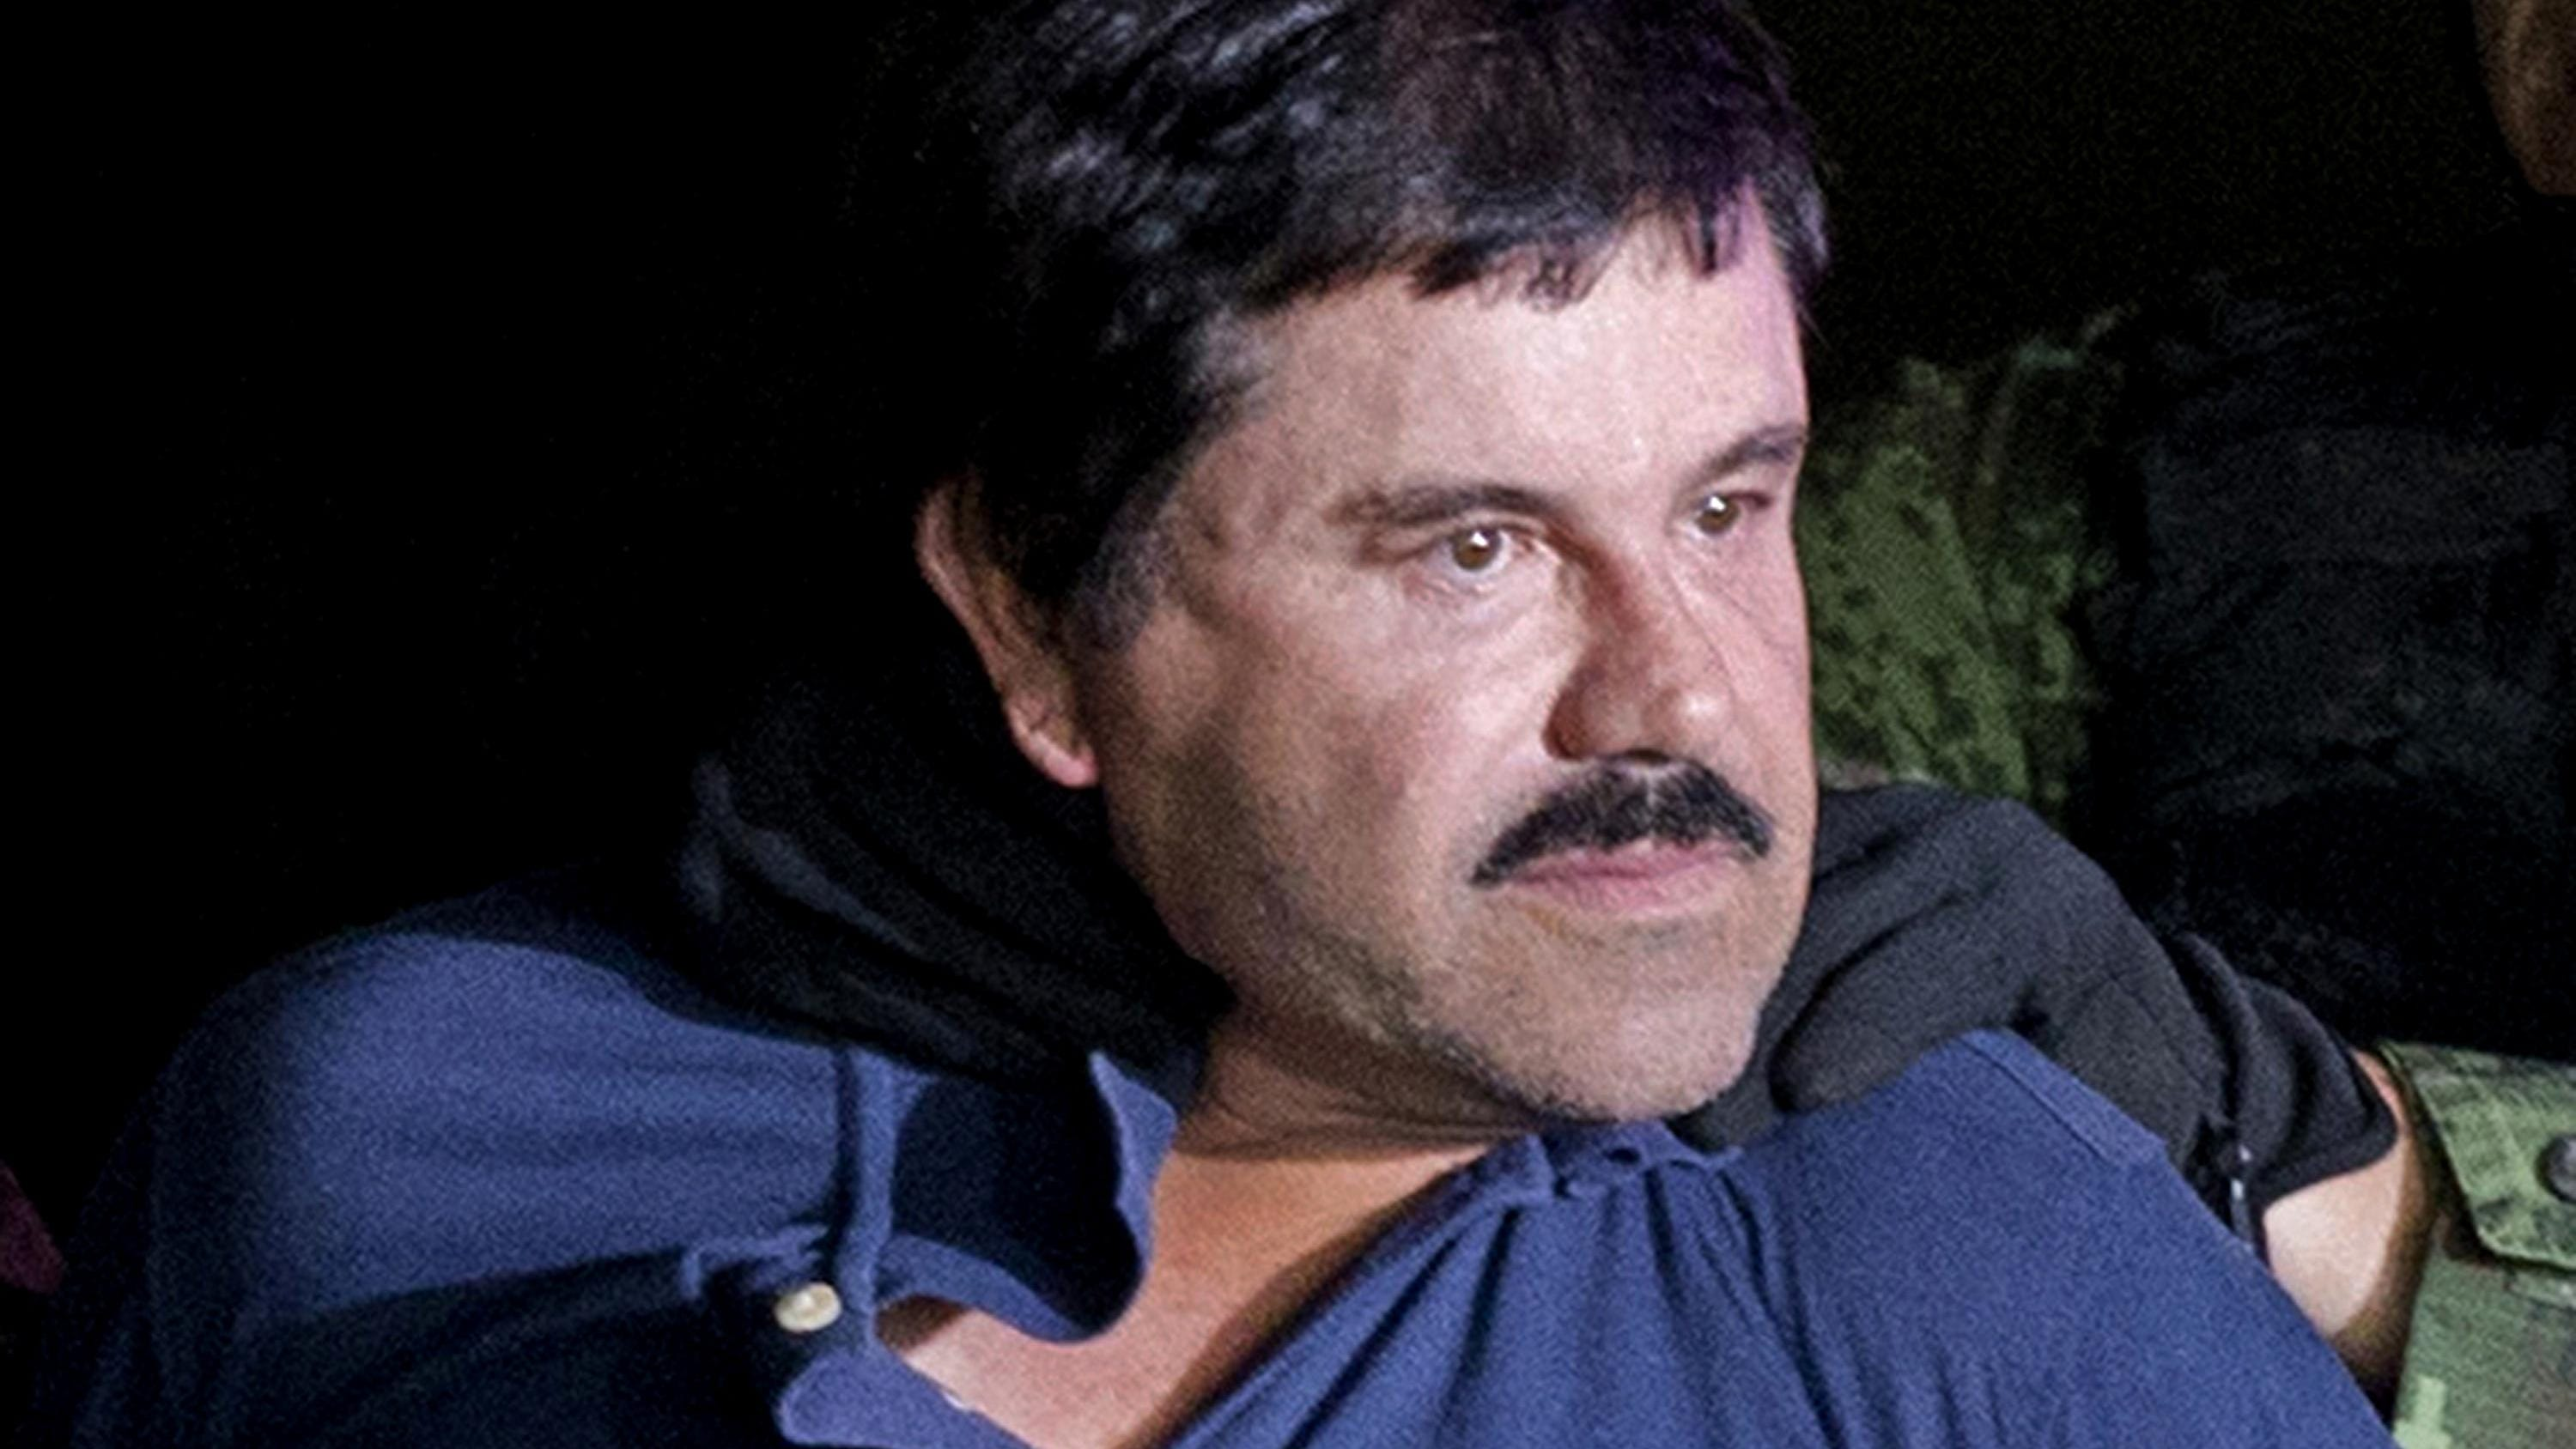 notorious drug lord joaquin  u0026 39 el chapo u0026 39  guzman convicted